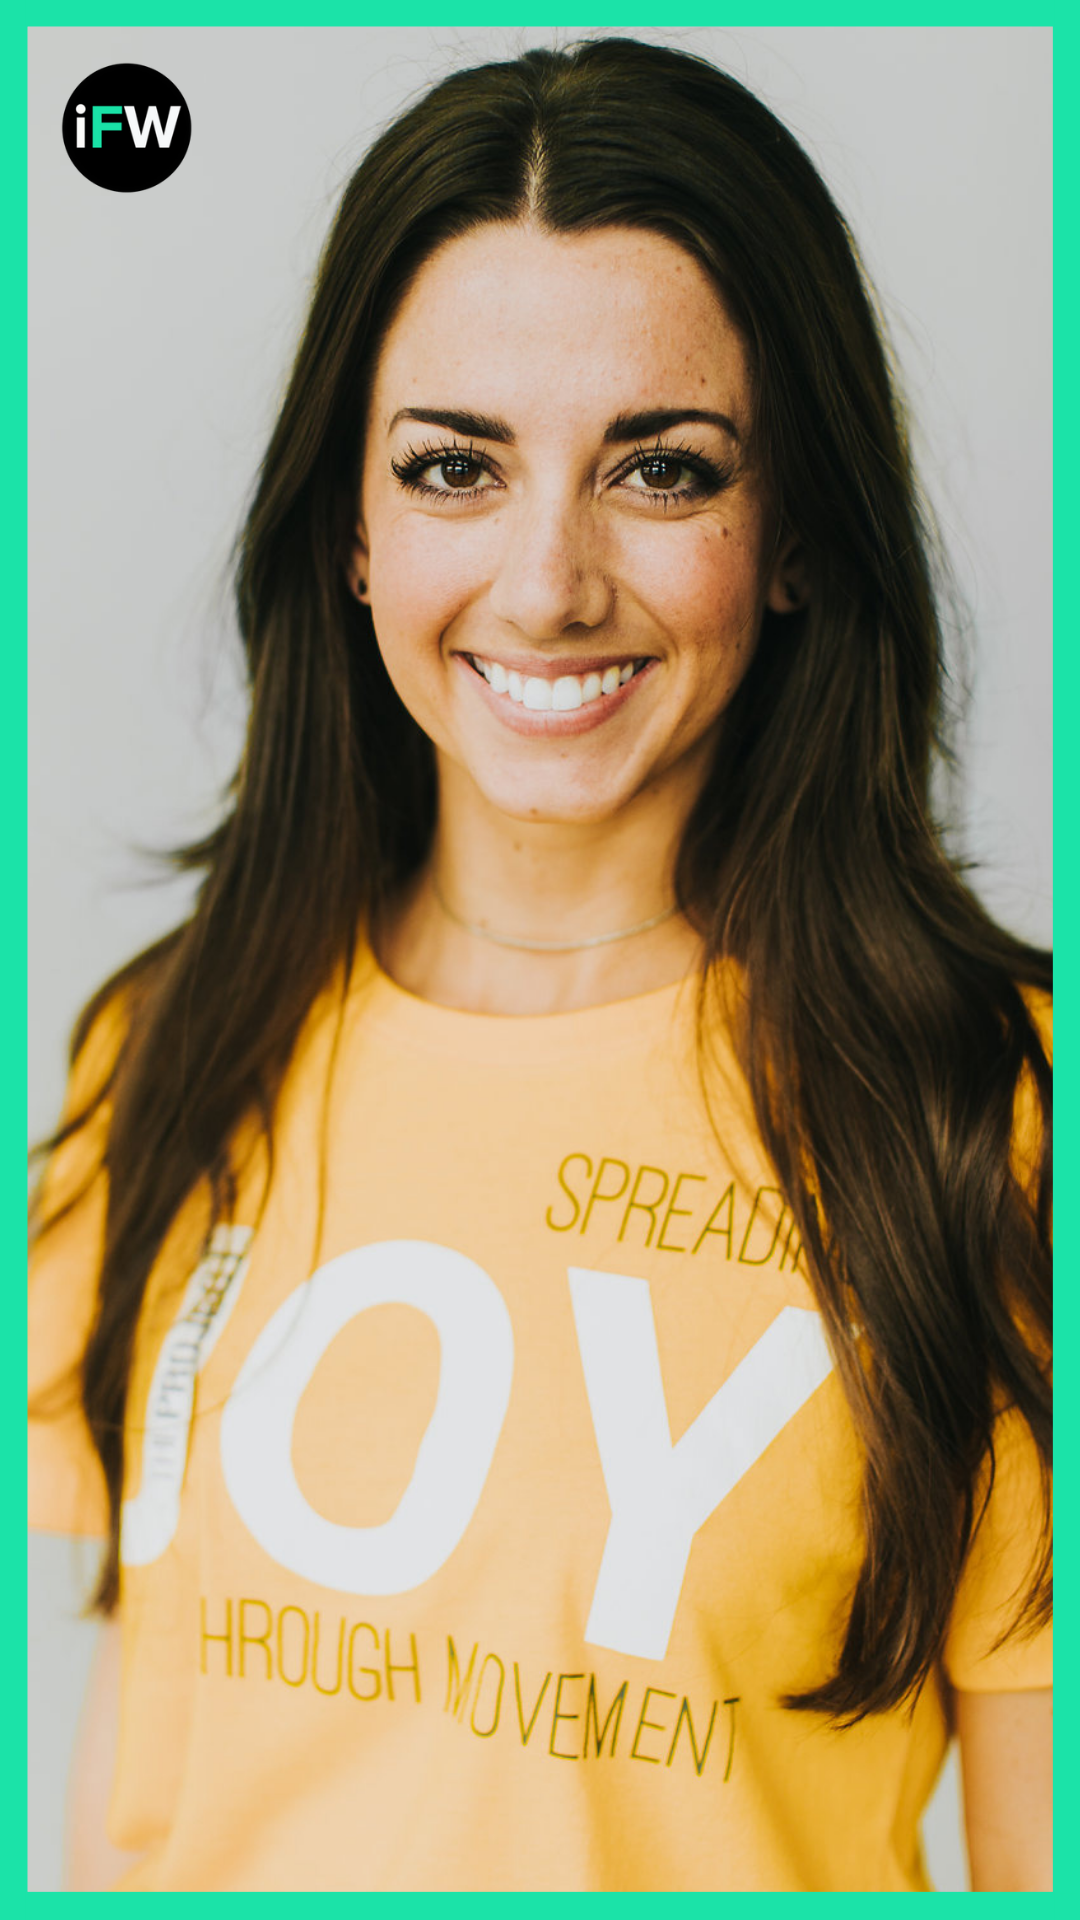 """You are not in this alone. The community that iFundwomen has created is such a resourceful tool for you if you let it be! Don't hesitate to connect with other business owners if you feel like you are in a rut."" - Lauren Beasley, Founder of The Project -"